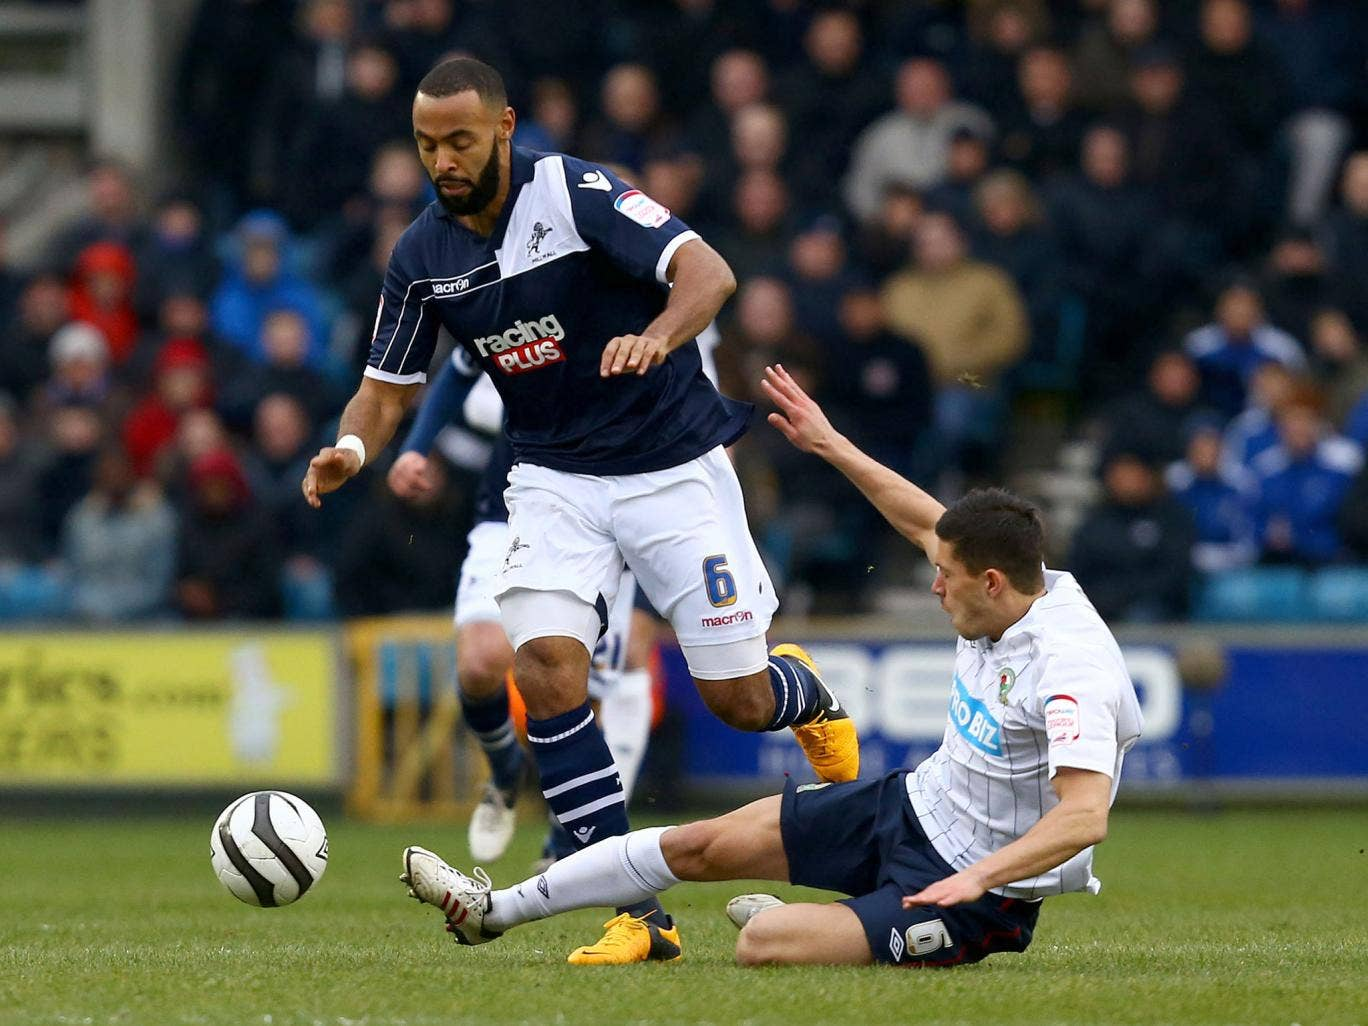 Jason Lowe of Blackburn Rovers slides in for a tackle on Liam Trotter of Millwall